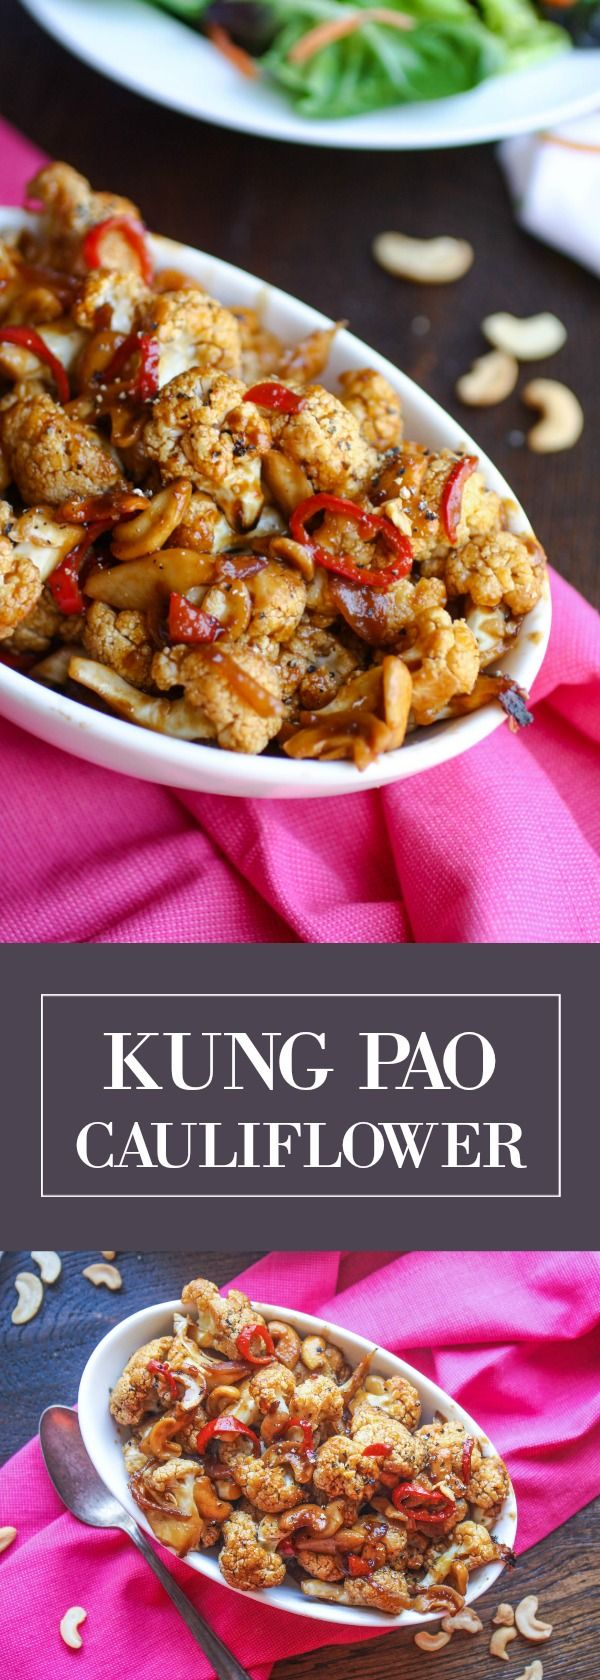 Kung Pao Cauliflower is a delicious, meatless dish you can serve anytime.